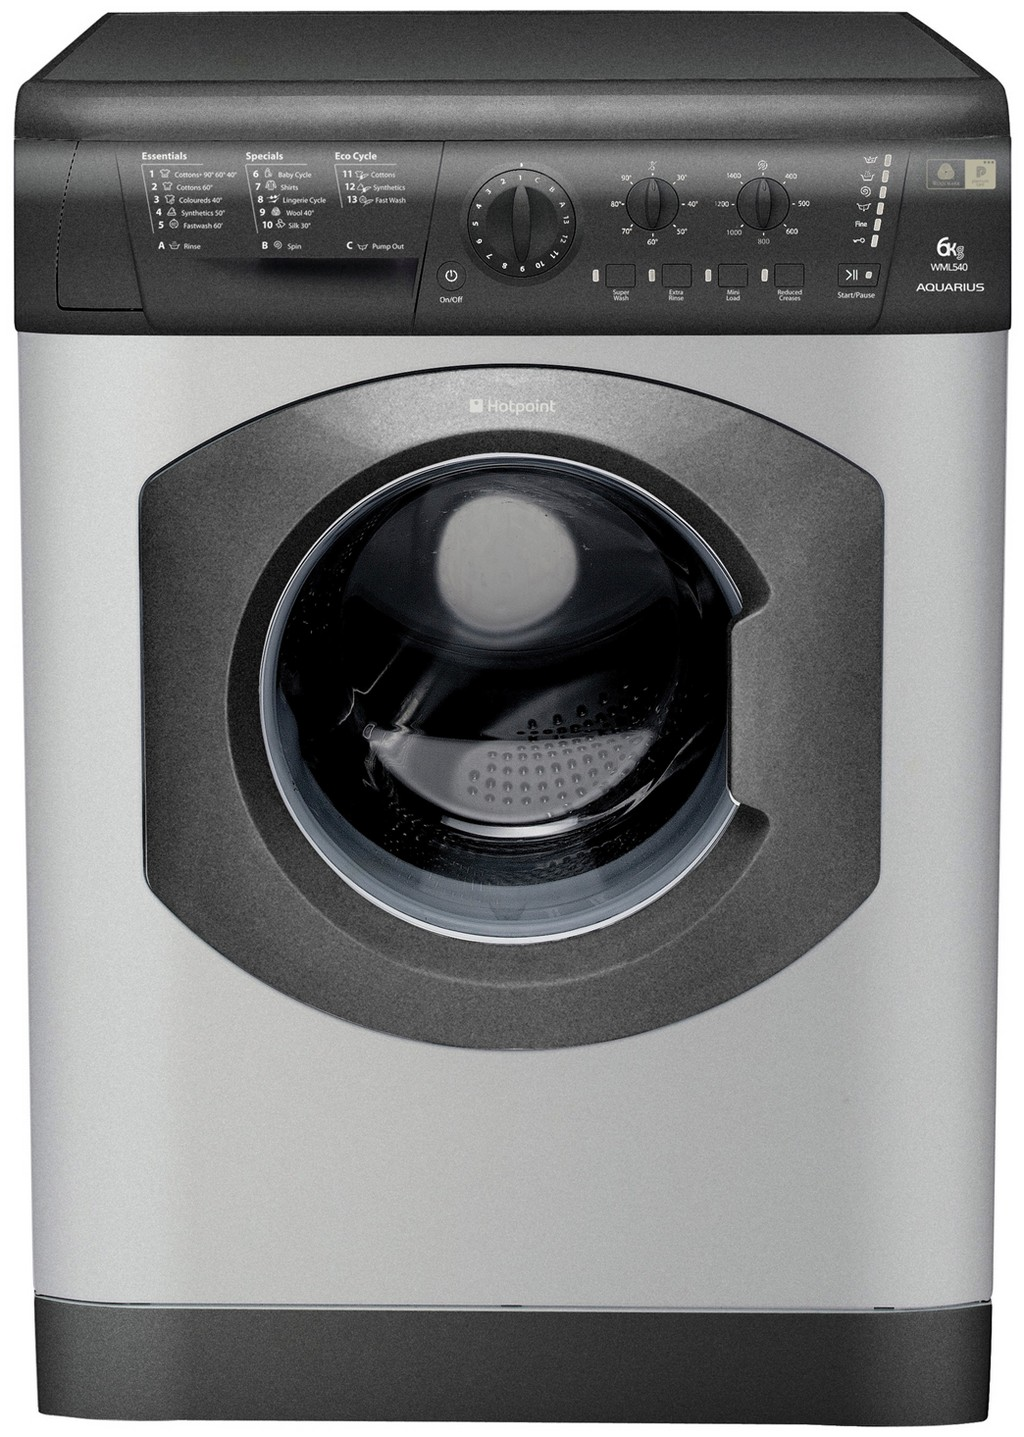 hotpoint aquarius washing machine, front loader washer, maytag neptune washer